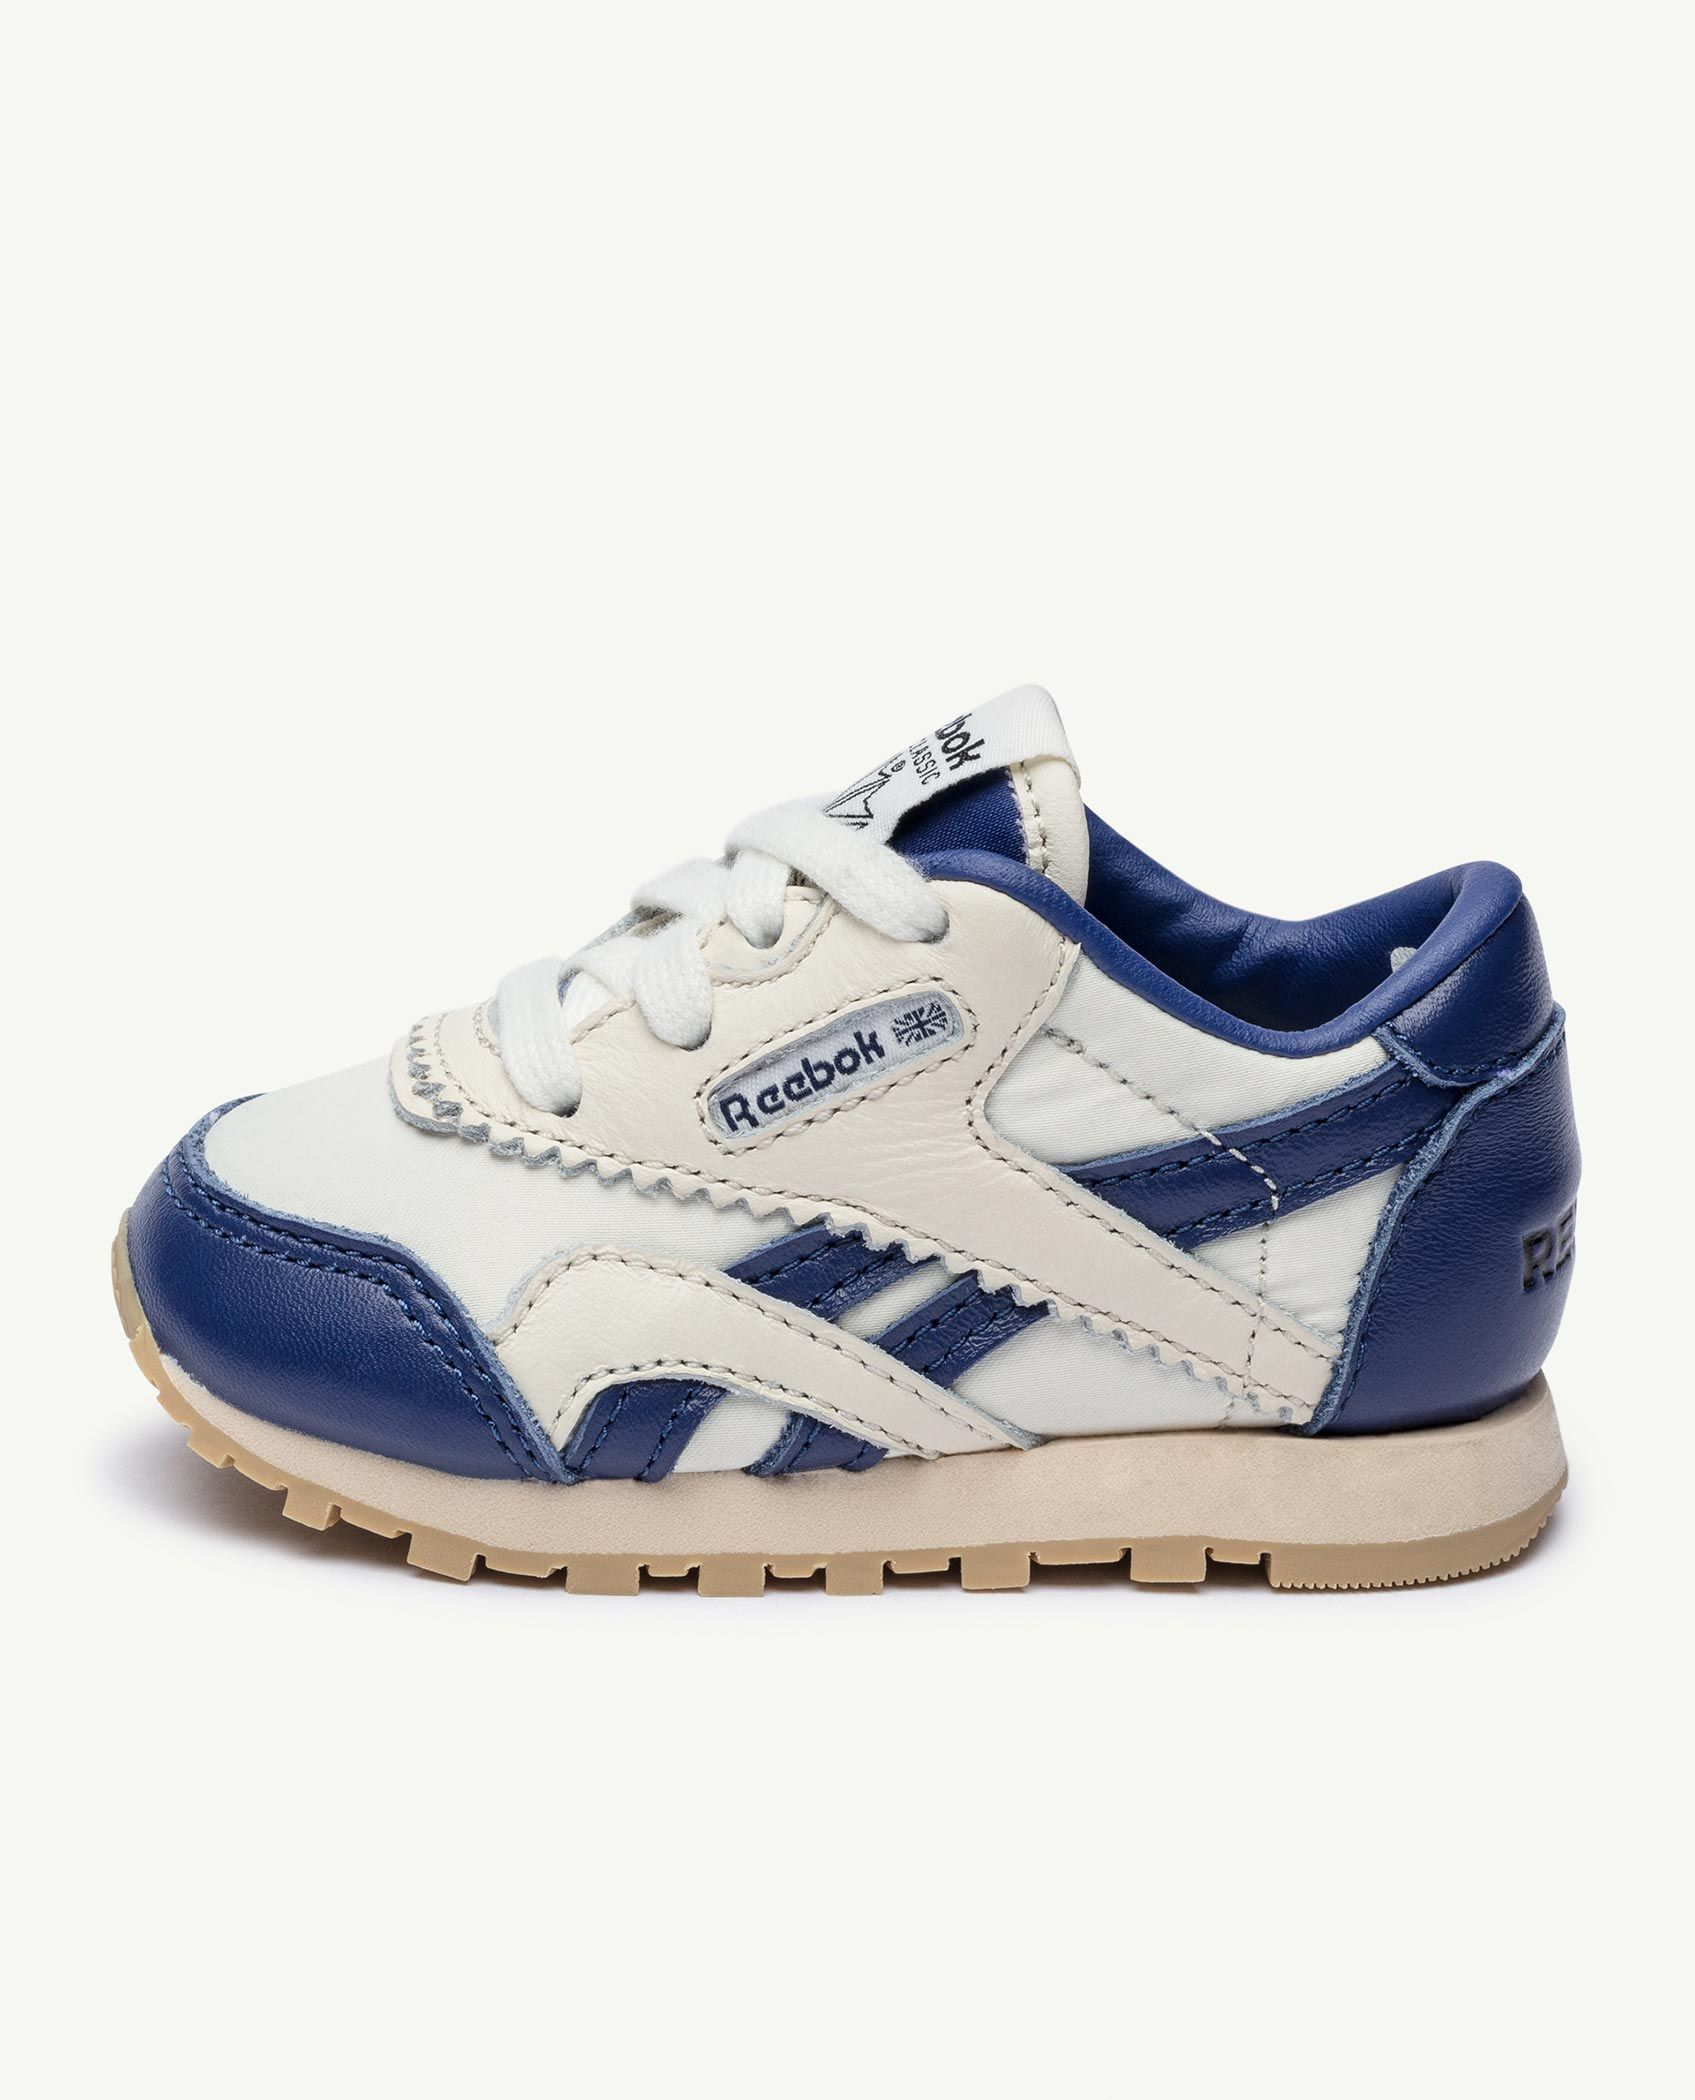 Reebok x The Animals Observatory Classic Nylon Navy Baby img-1